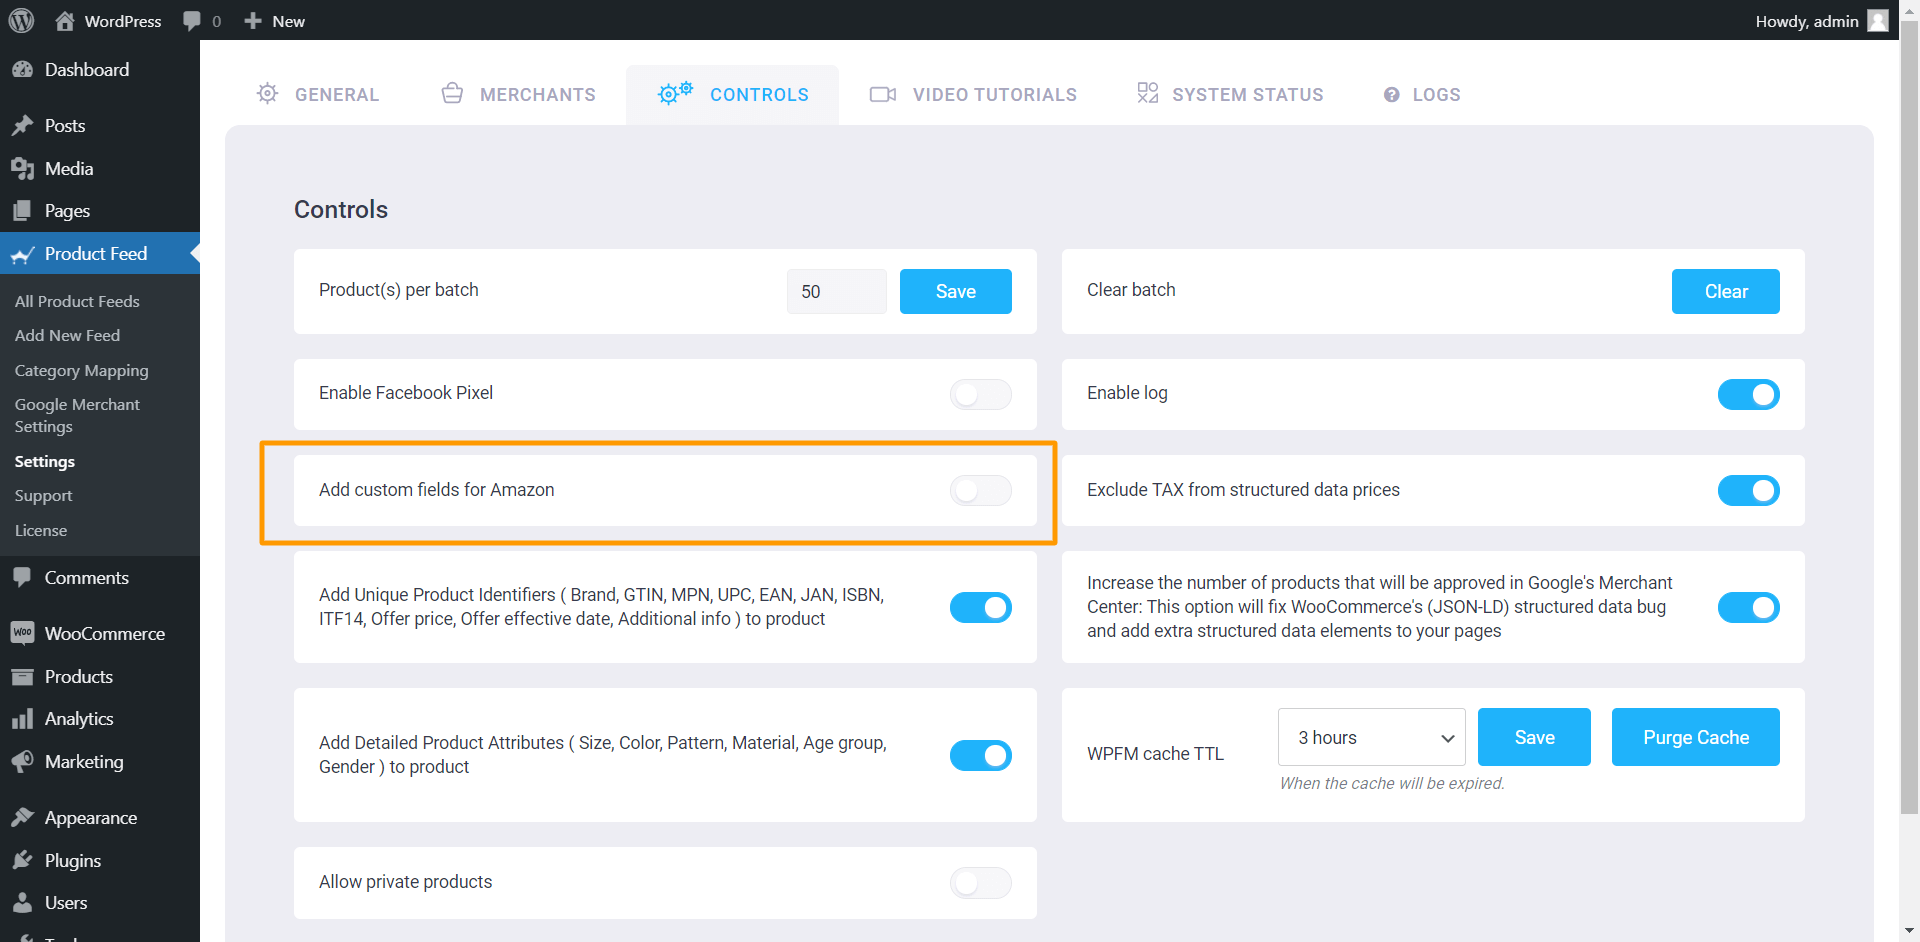 Product Feed Manager Controls - Add Custom Fields For Amazon